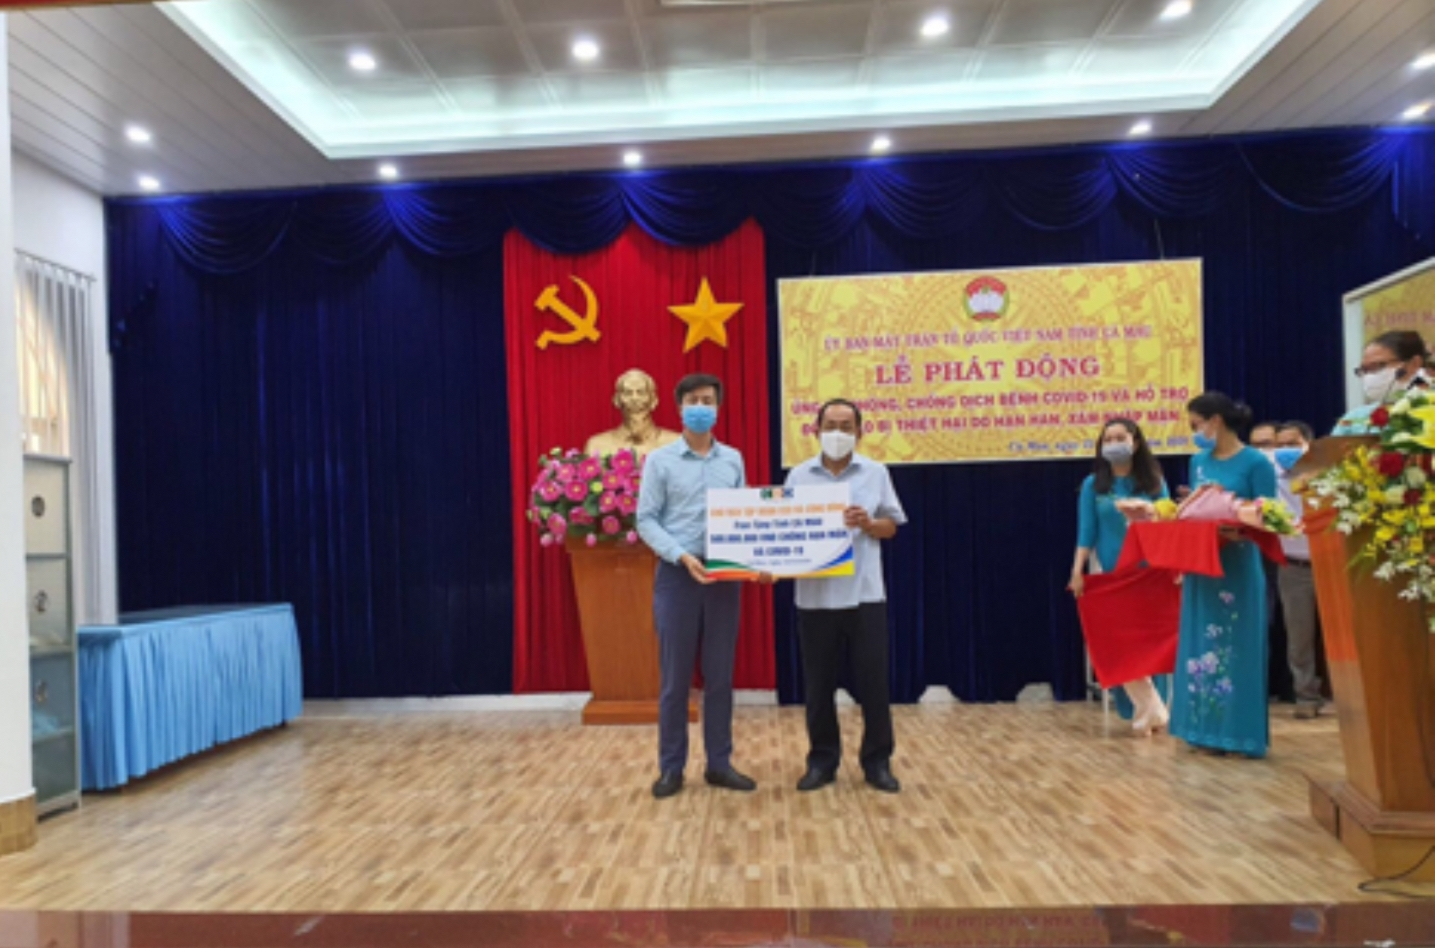 tap doan ceo ung ho 2 ty dong cung tp ha noi chong dich covid 19